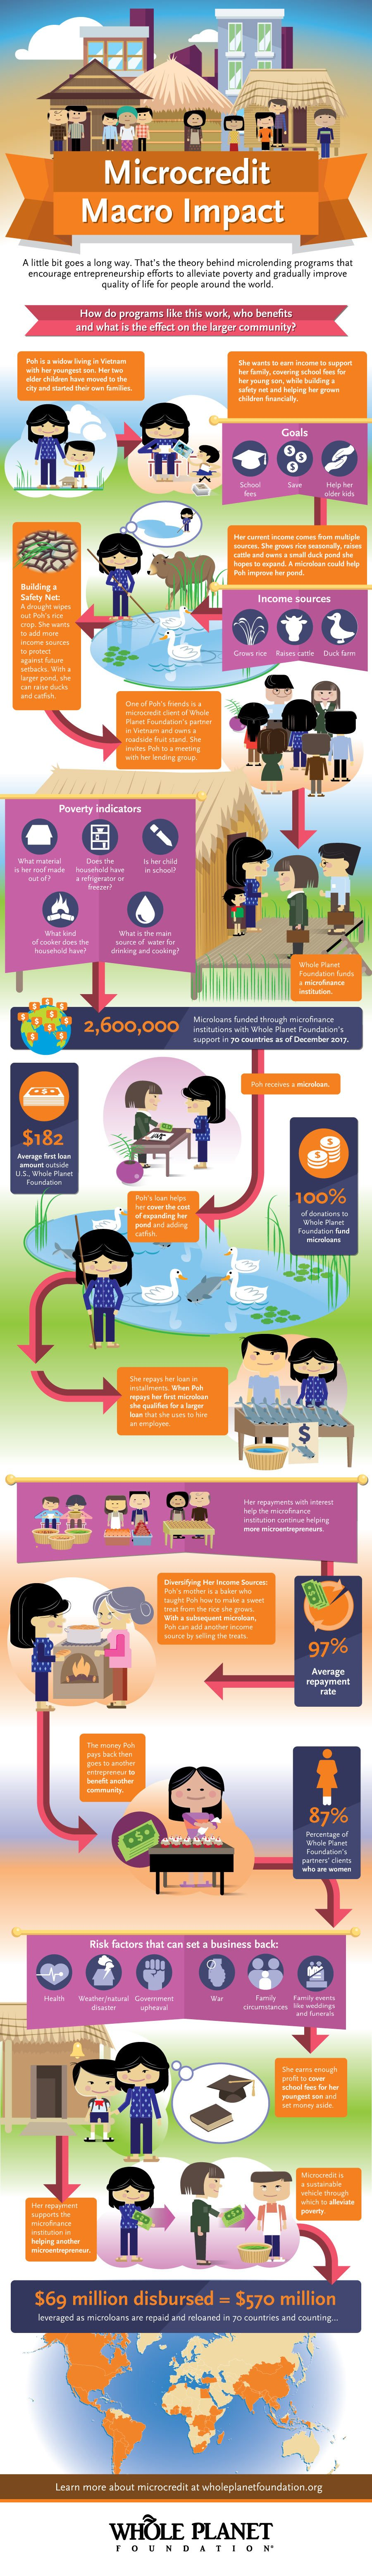 how microcredit works infographic